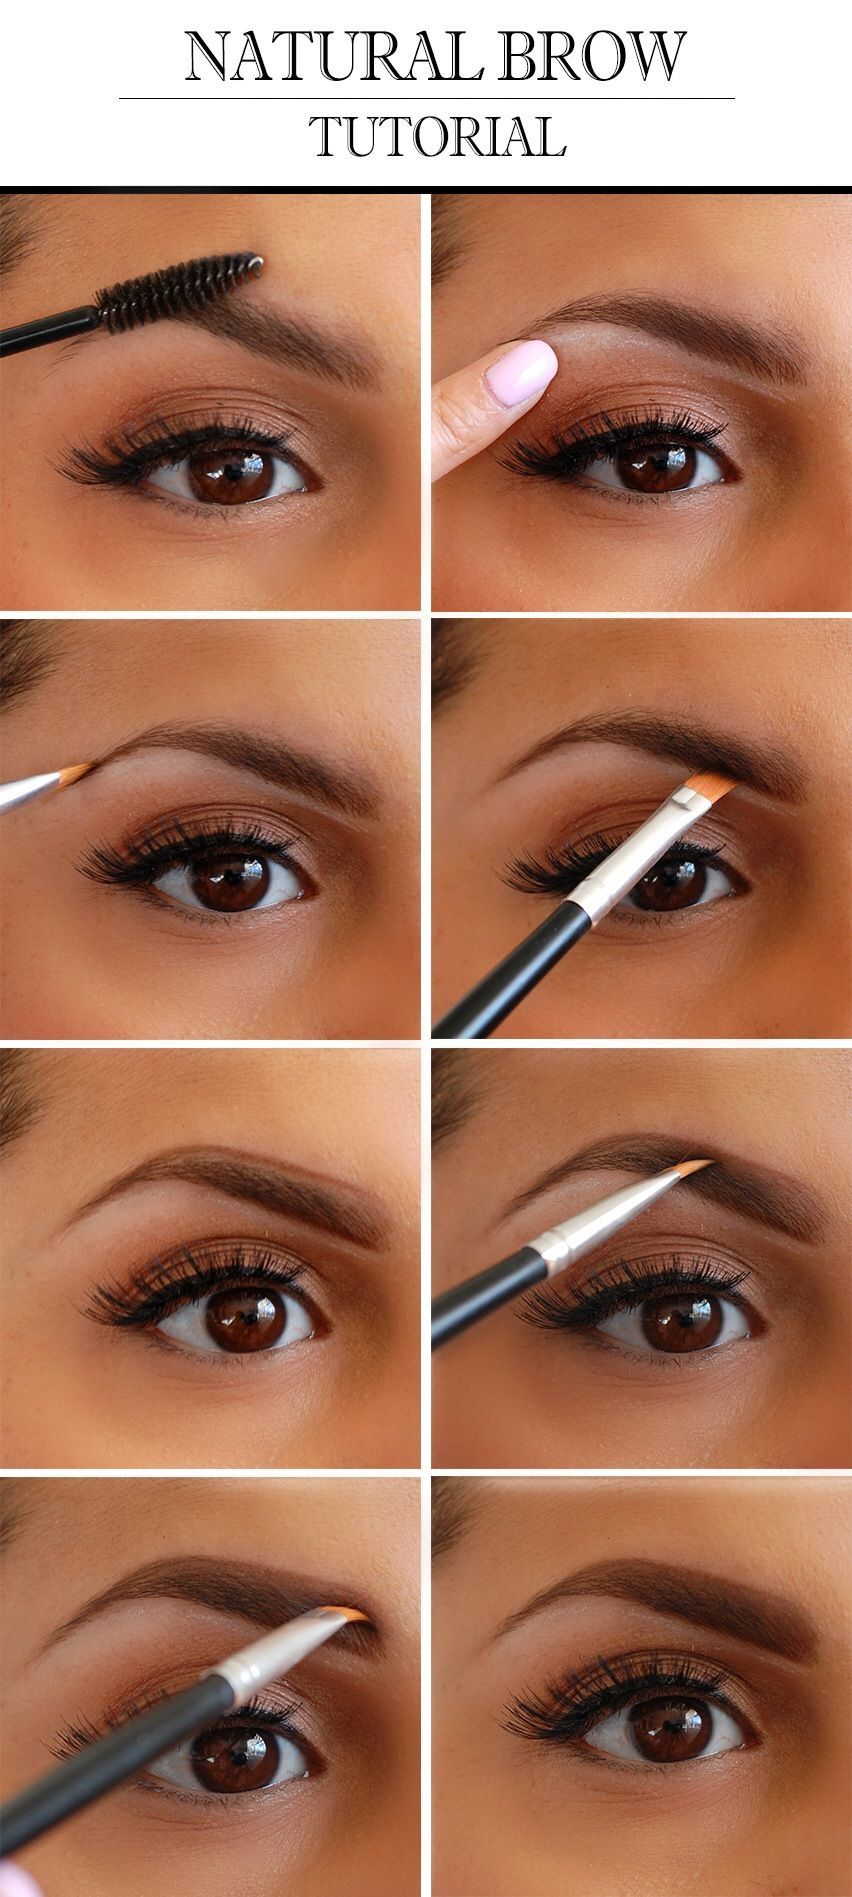 Natural Eyebrow Tutorial Shaping Your Eyebrows Pinterest